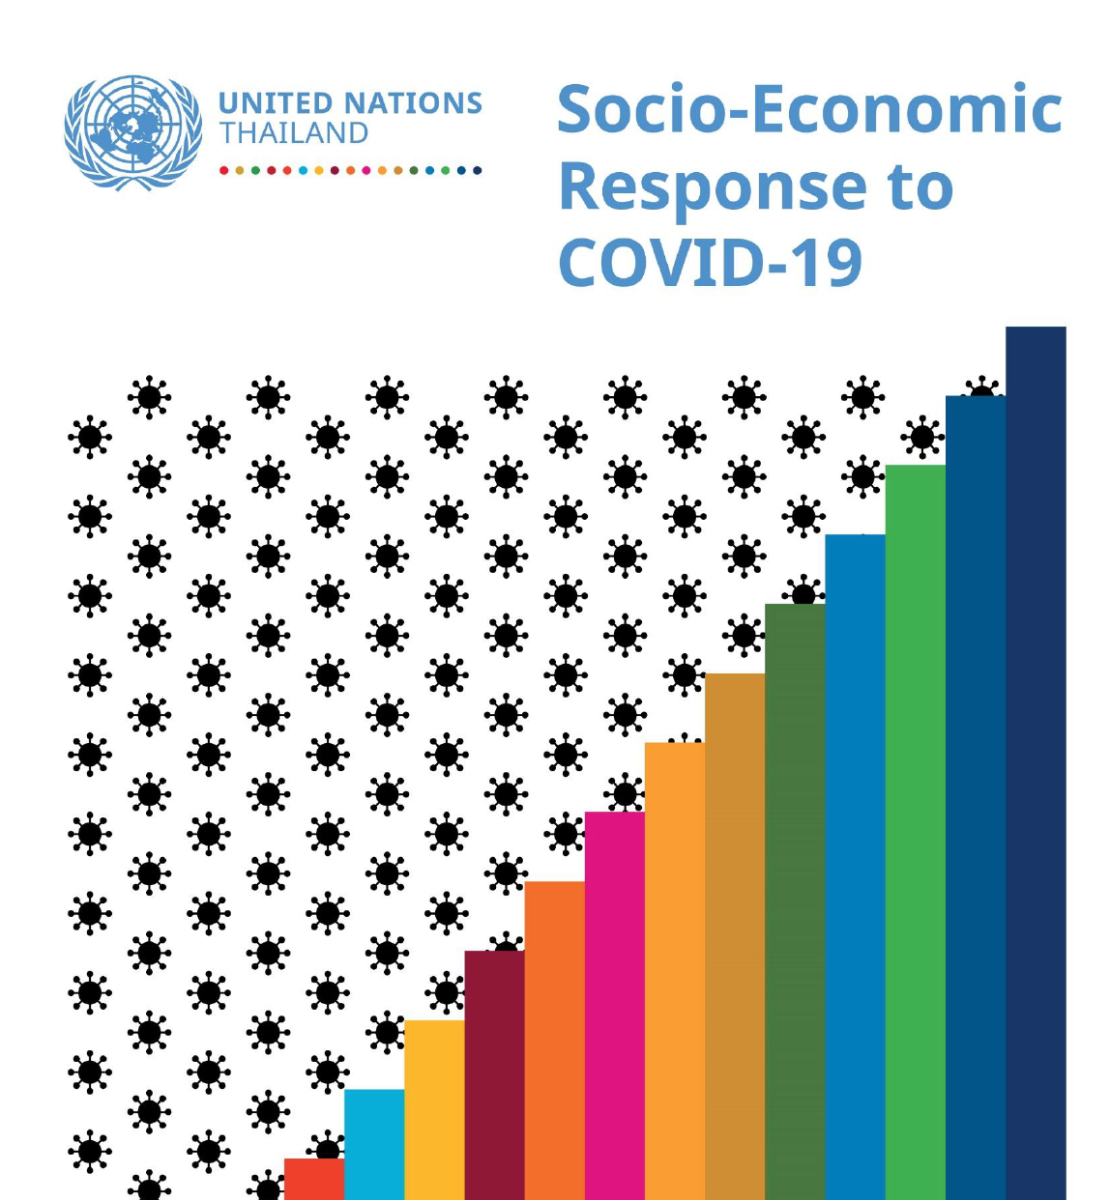 """Cover shows the title """"Socio-Economic Response to COVID-19 for Thailand"""" with virus looking black dots and colorful bars."""